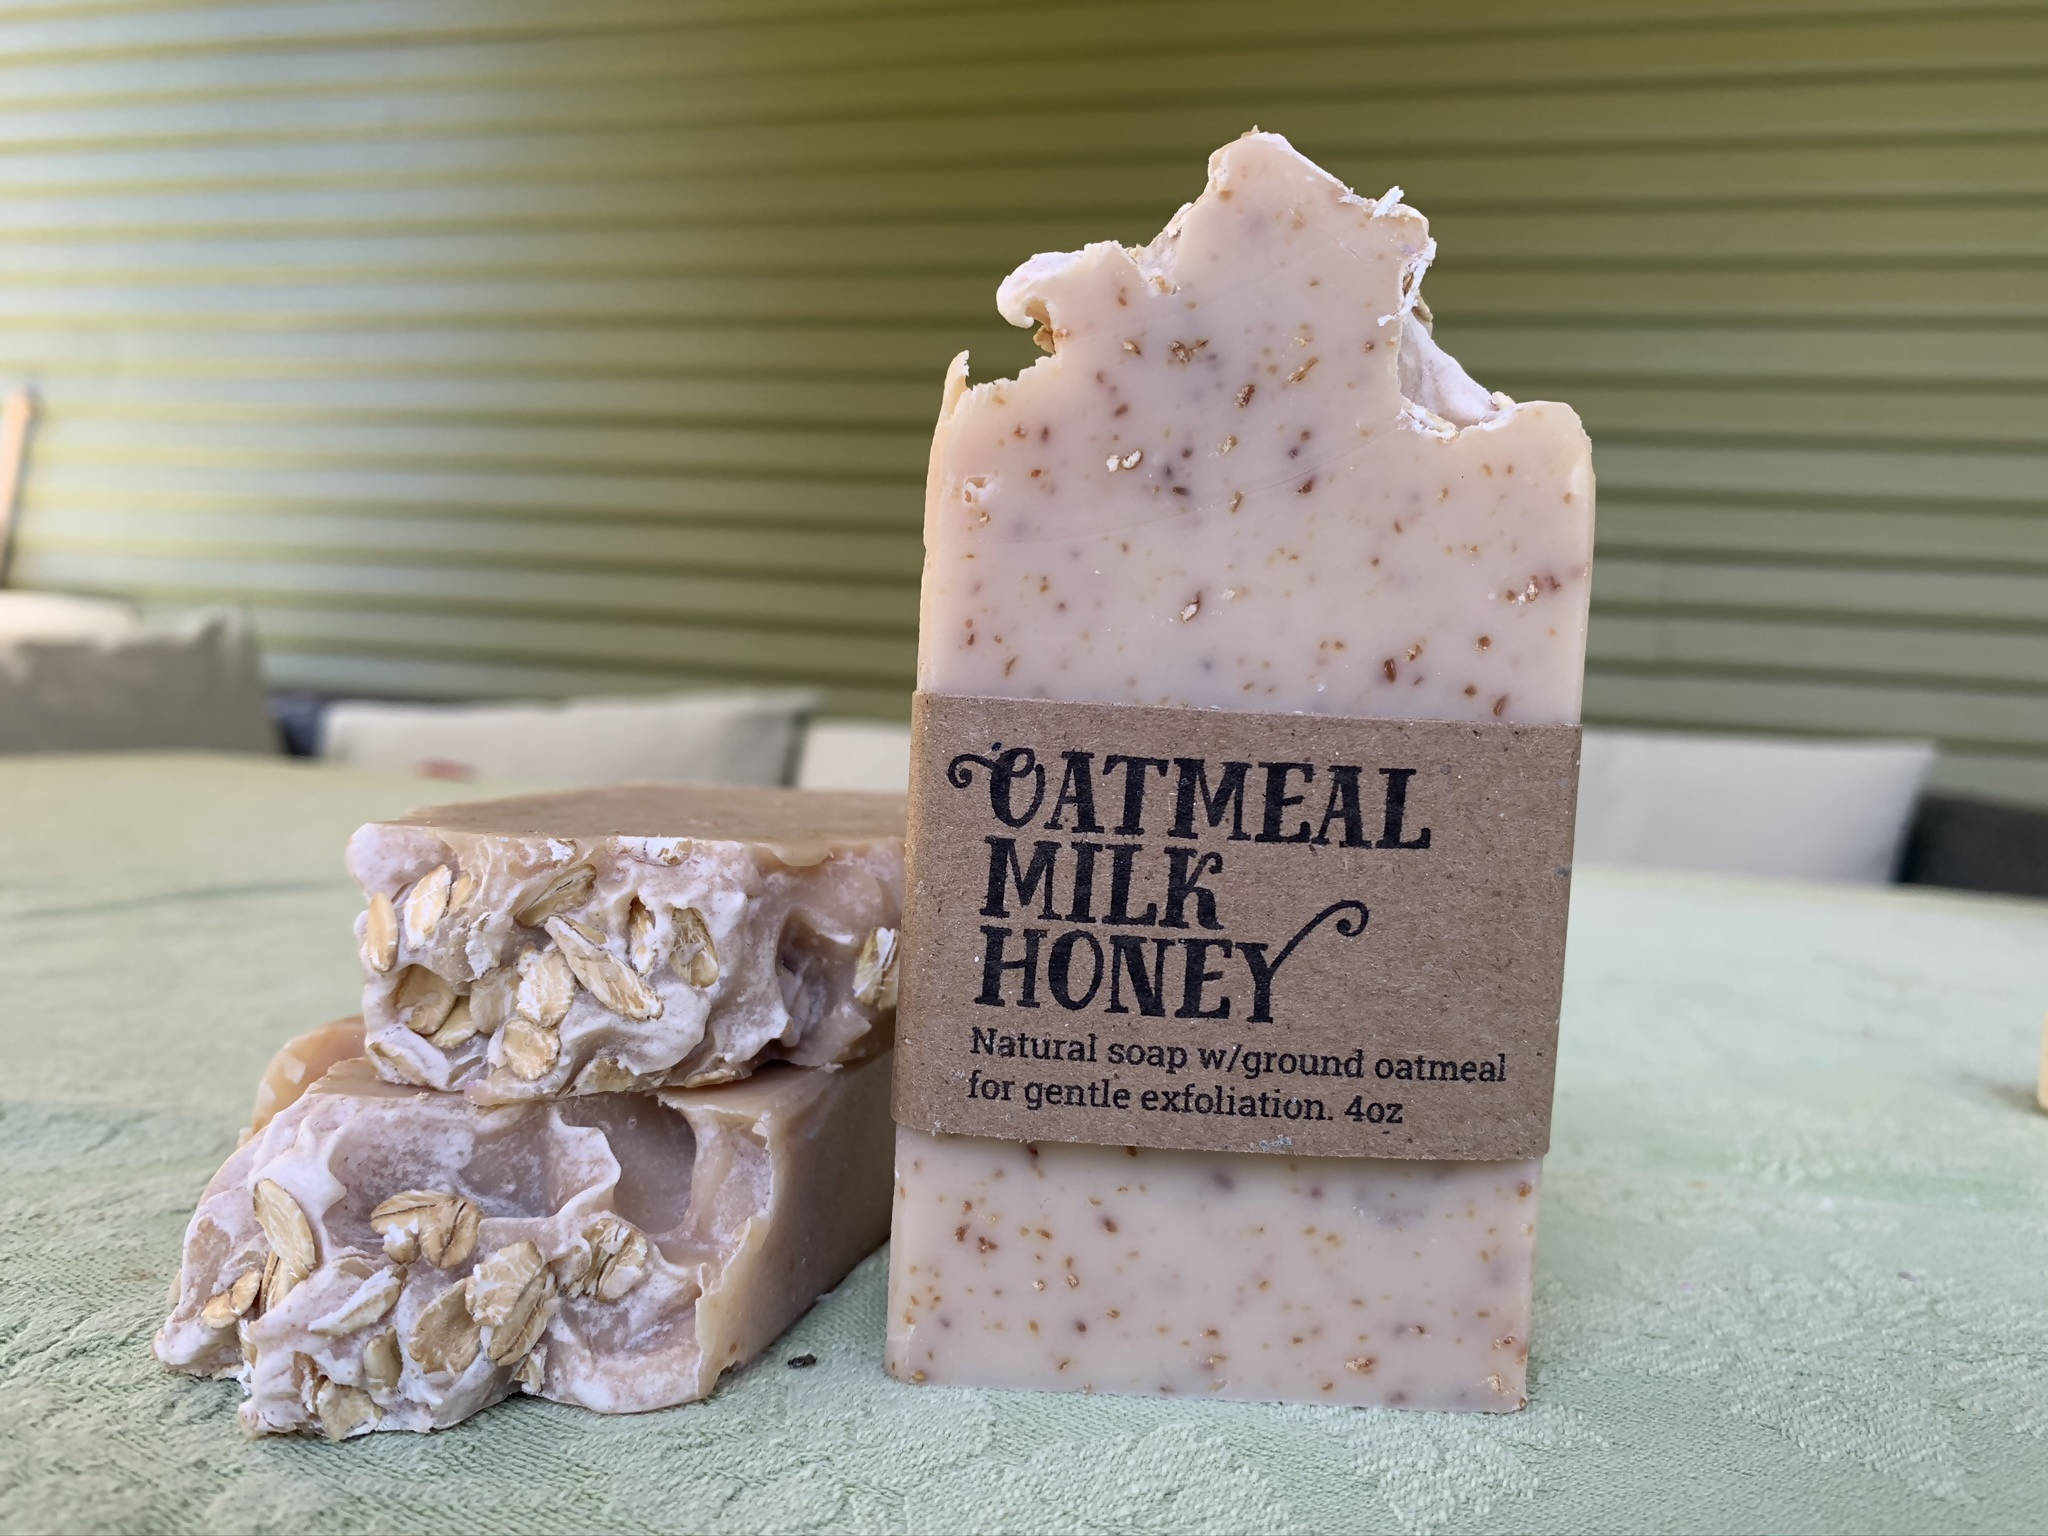 Oatmeal Milk Honey Soap